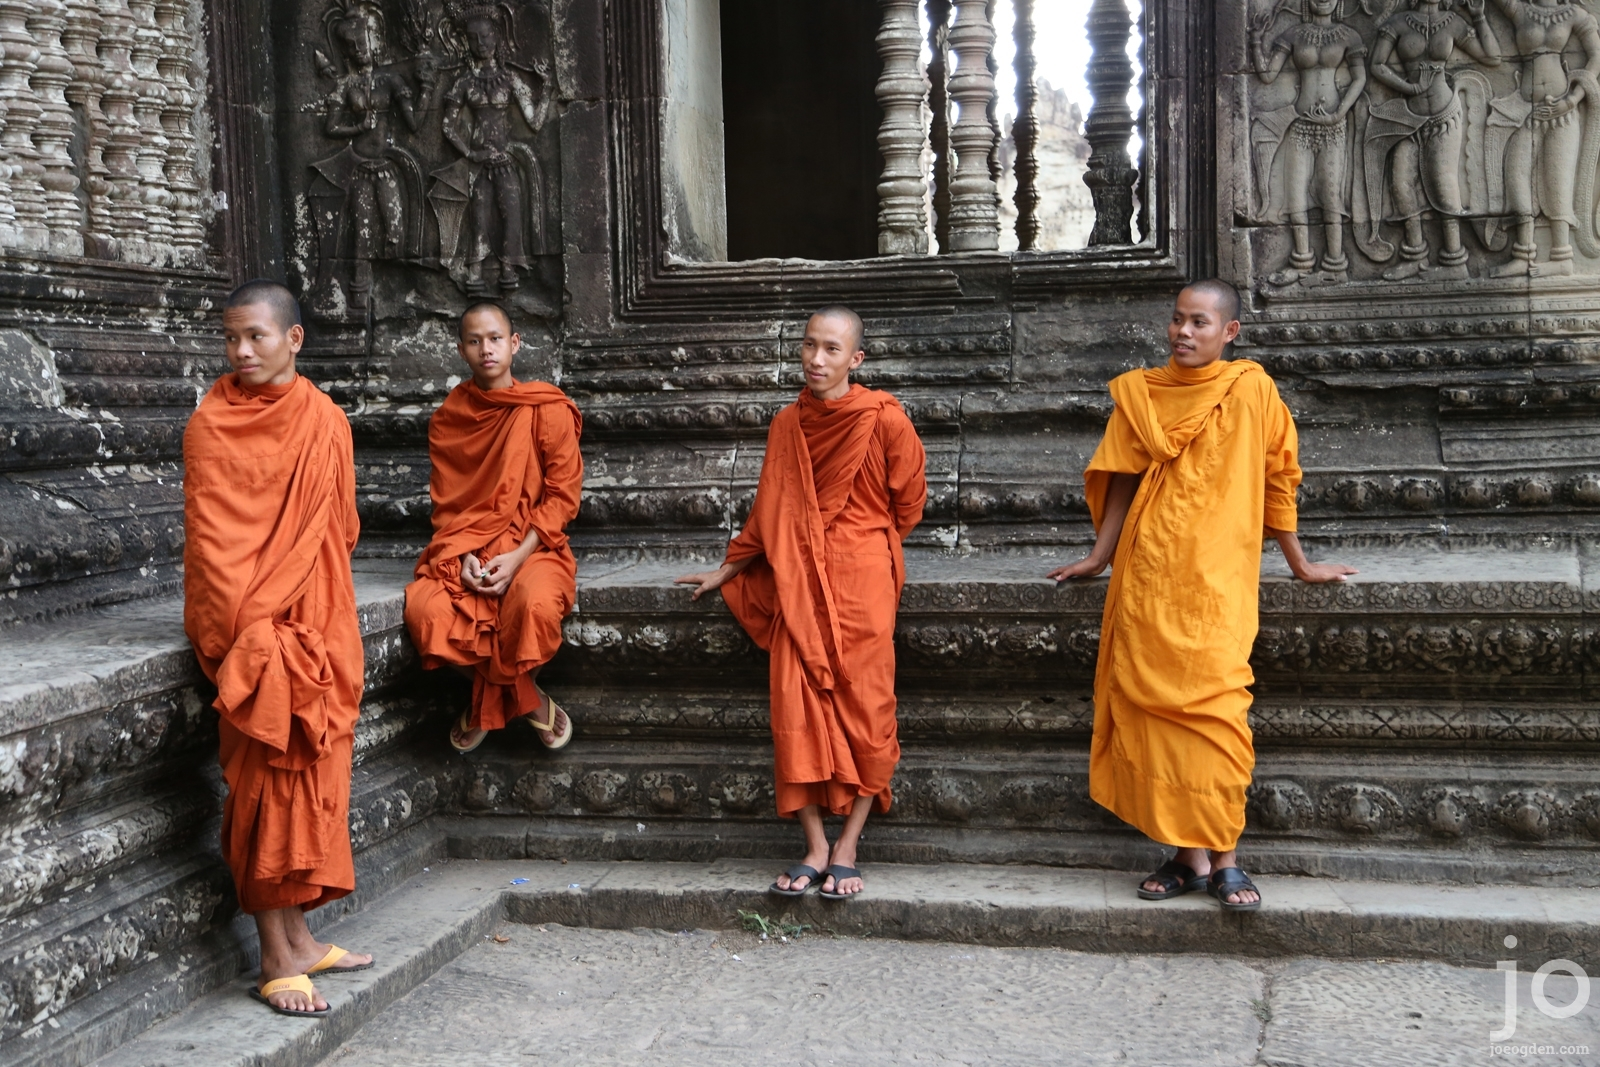 Monks at Angkor Wat, Siem Reap, Cambodia